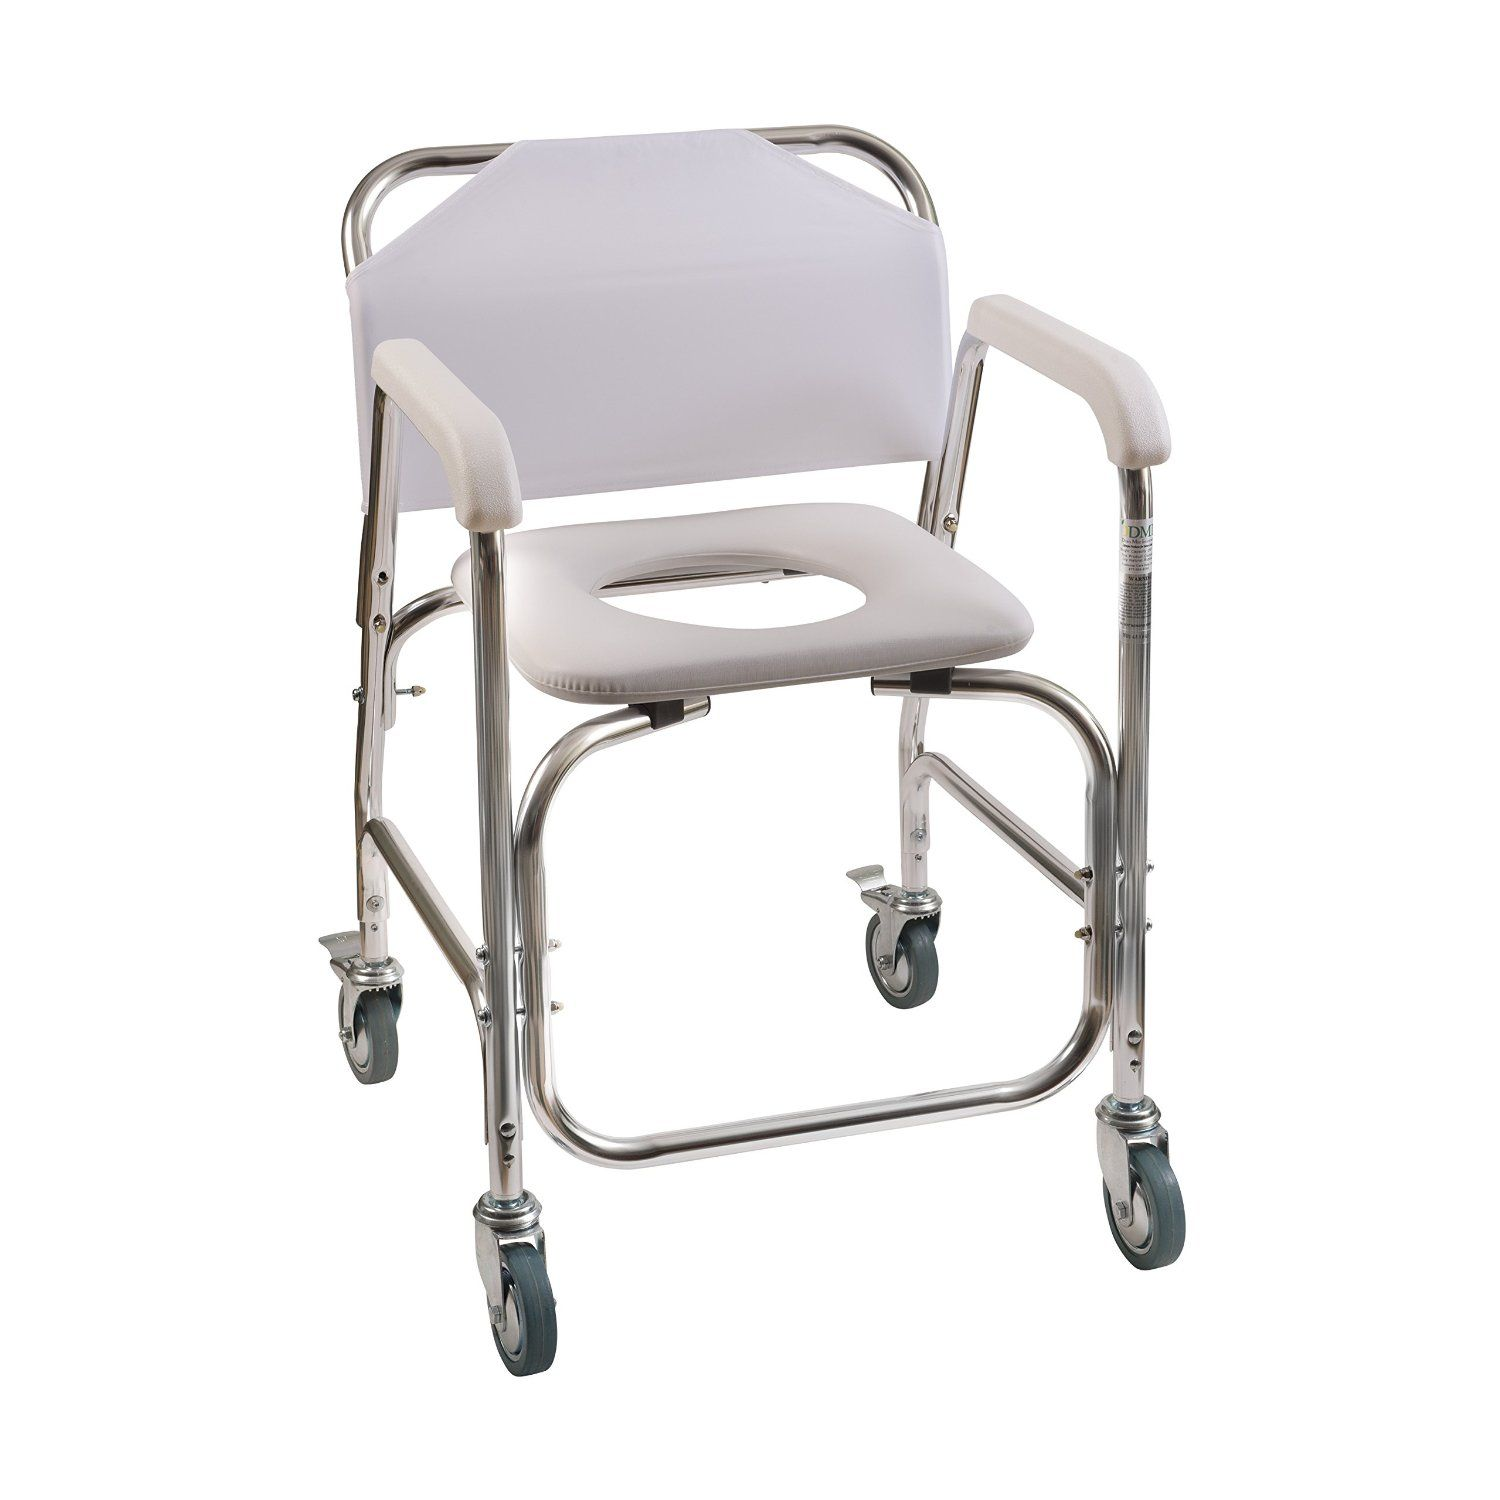 A Handicap Shower Chair Can Offer Flexibility Practicality And A